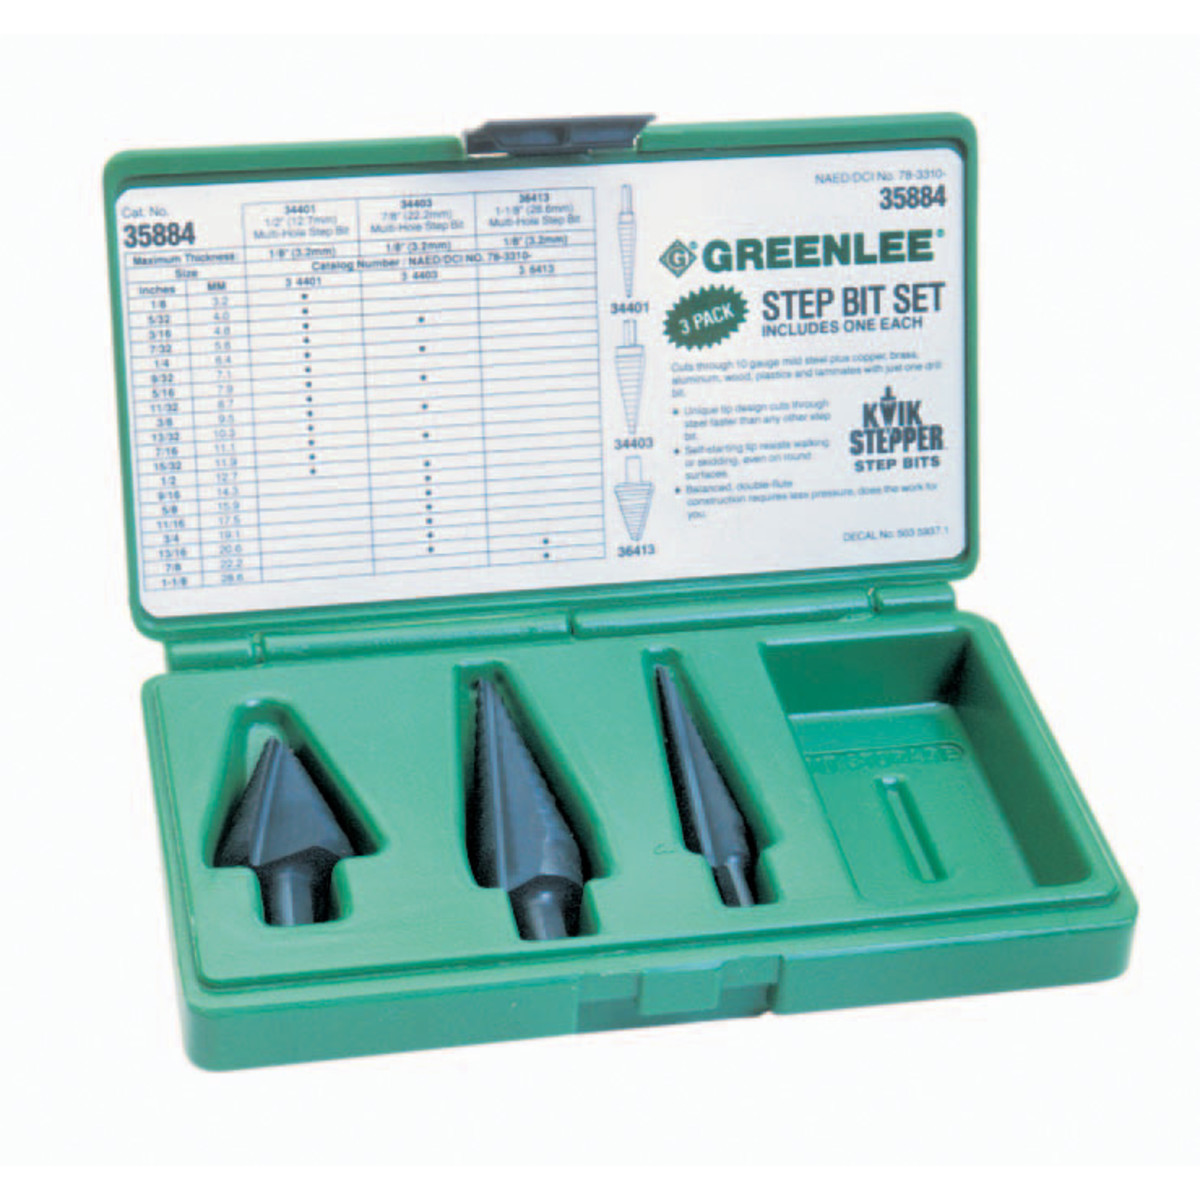 Greenlee 35884 Kwik Stepper Multi Hole Step Bit Kit includes #1, #3, #8